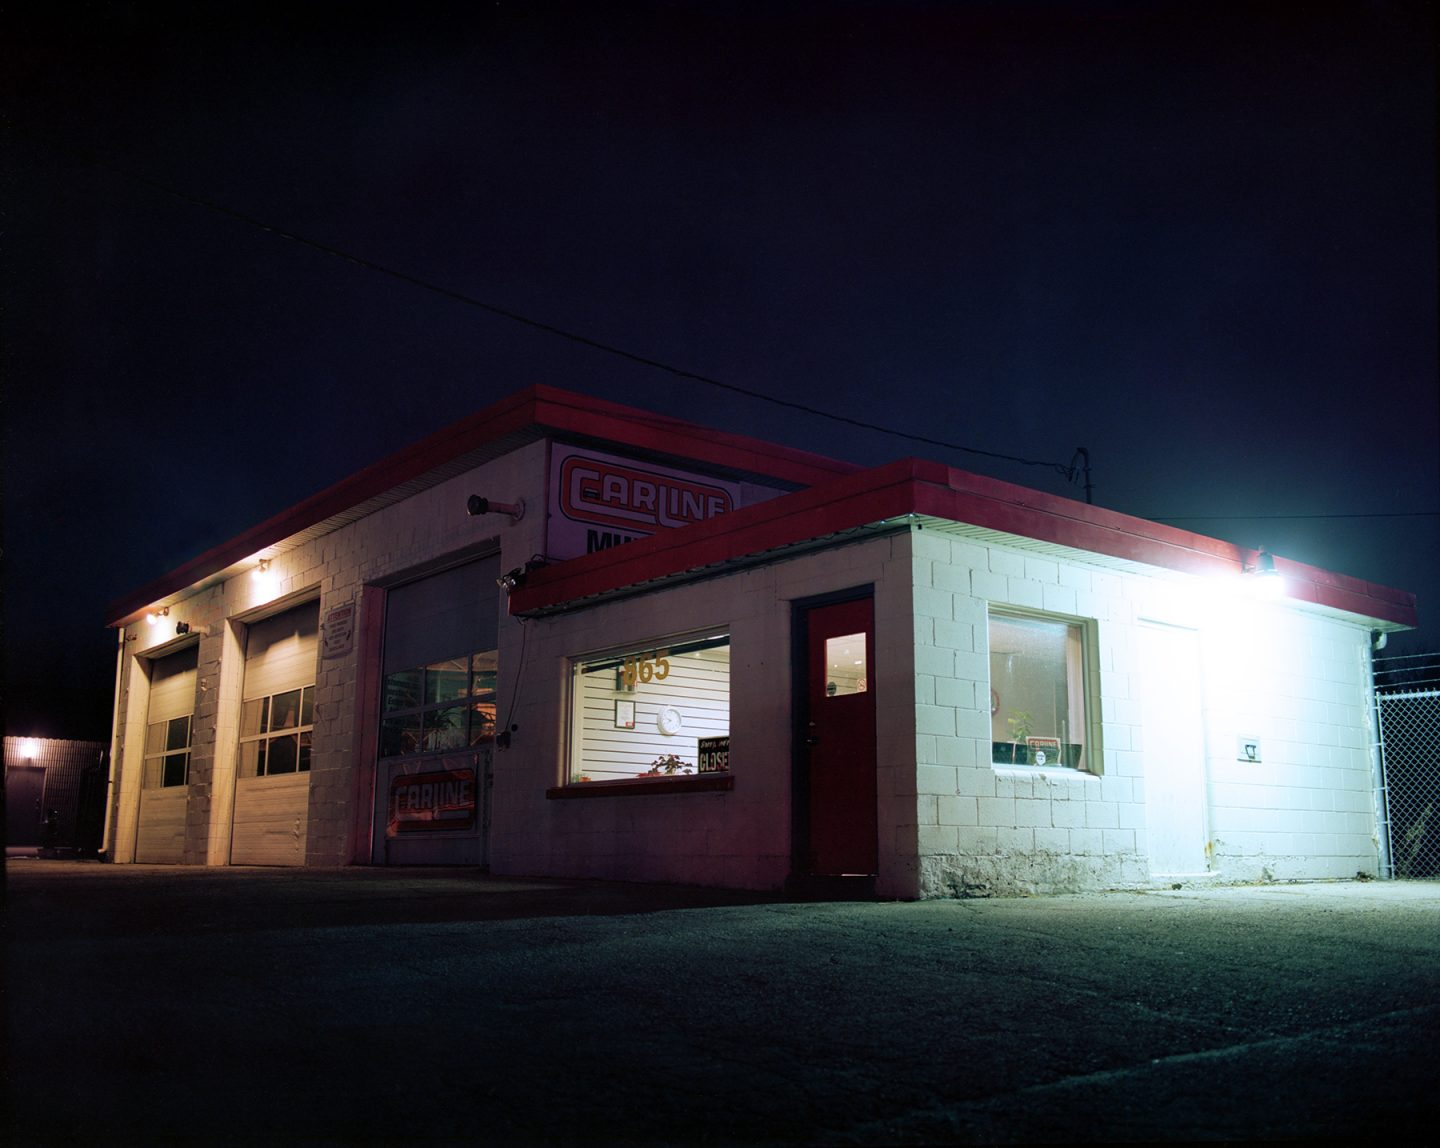 Kodak Ektar 100 120 film Mamiya rz67 Night Long Exposure